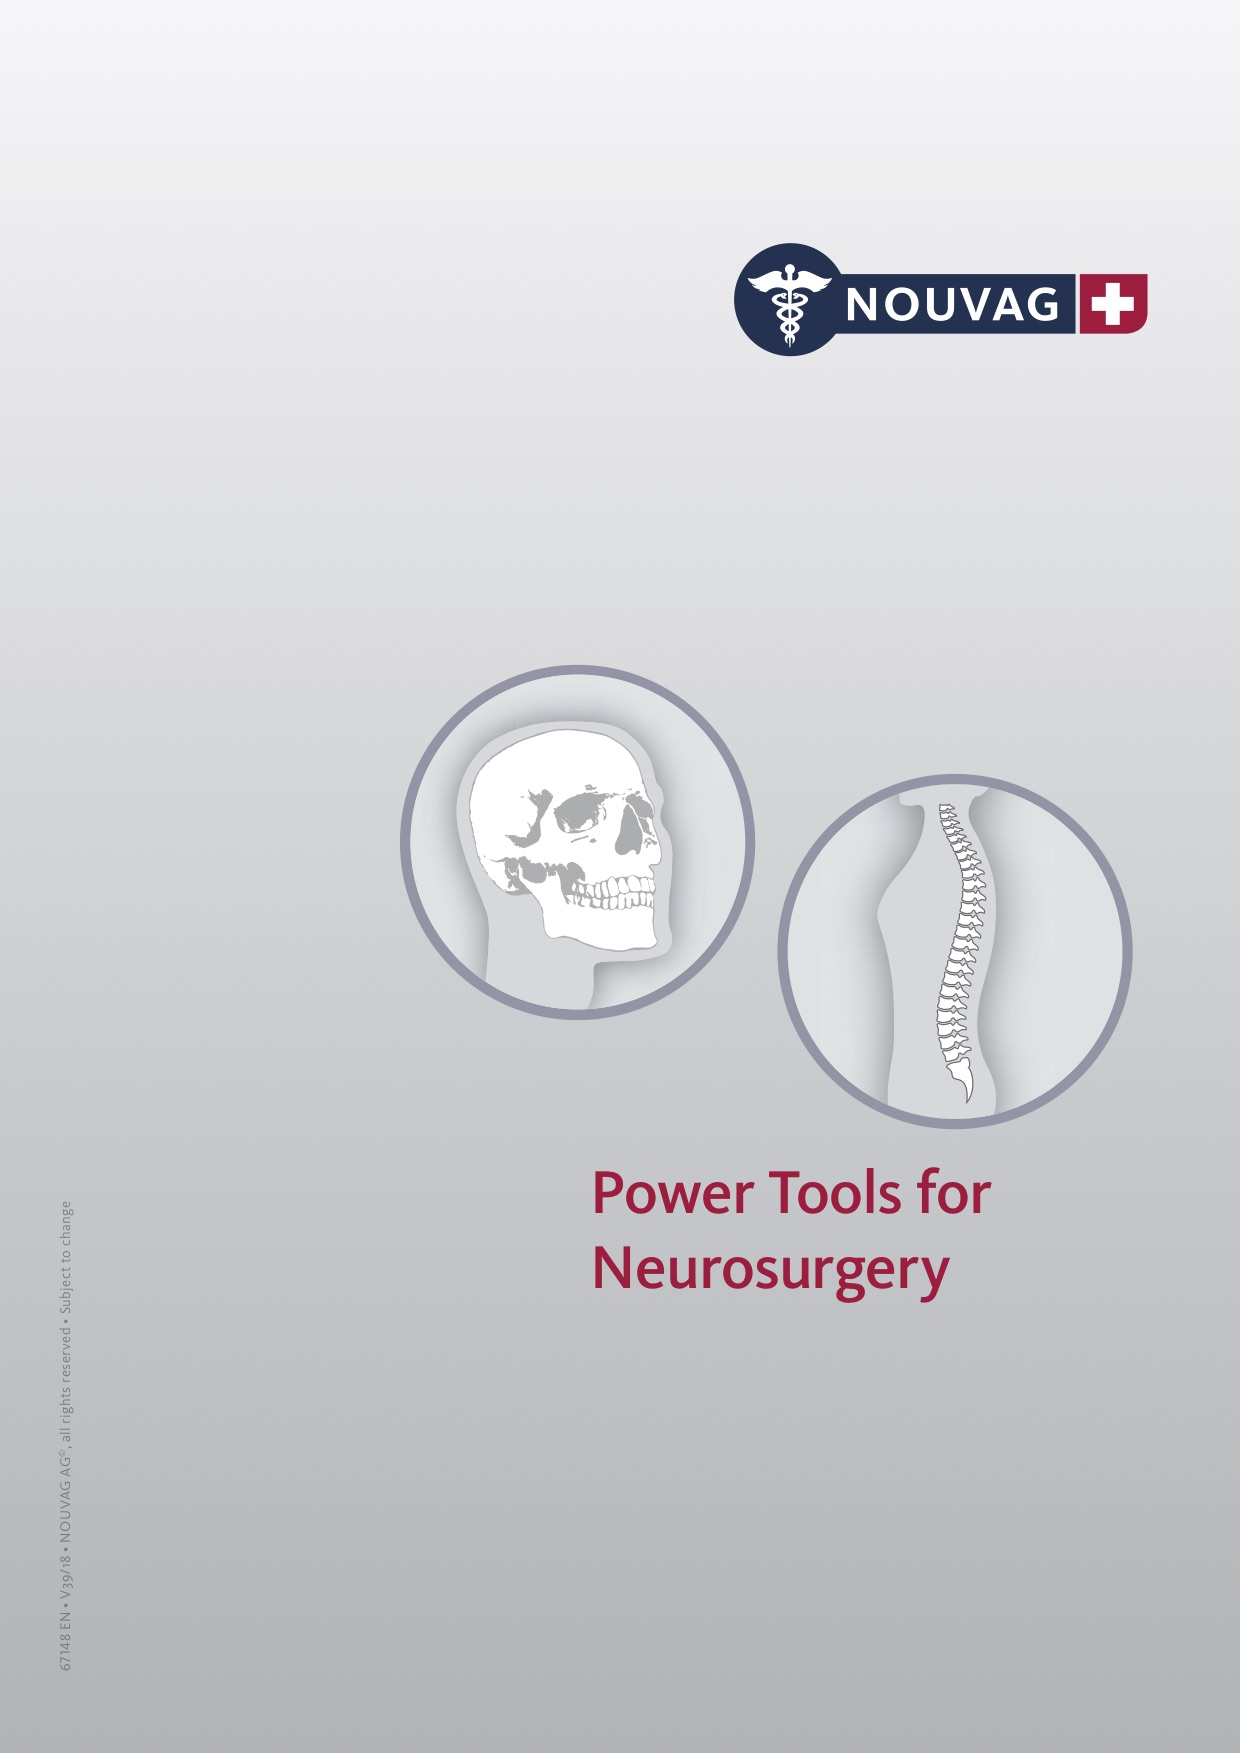 Power Tools for Neurosurgery NEW